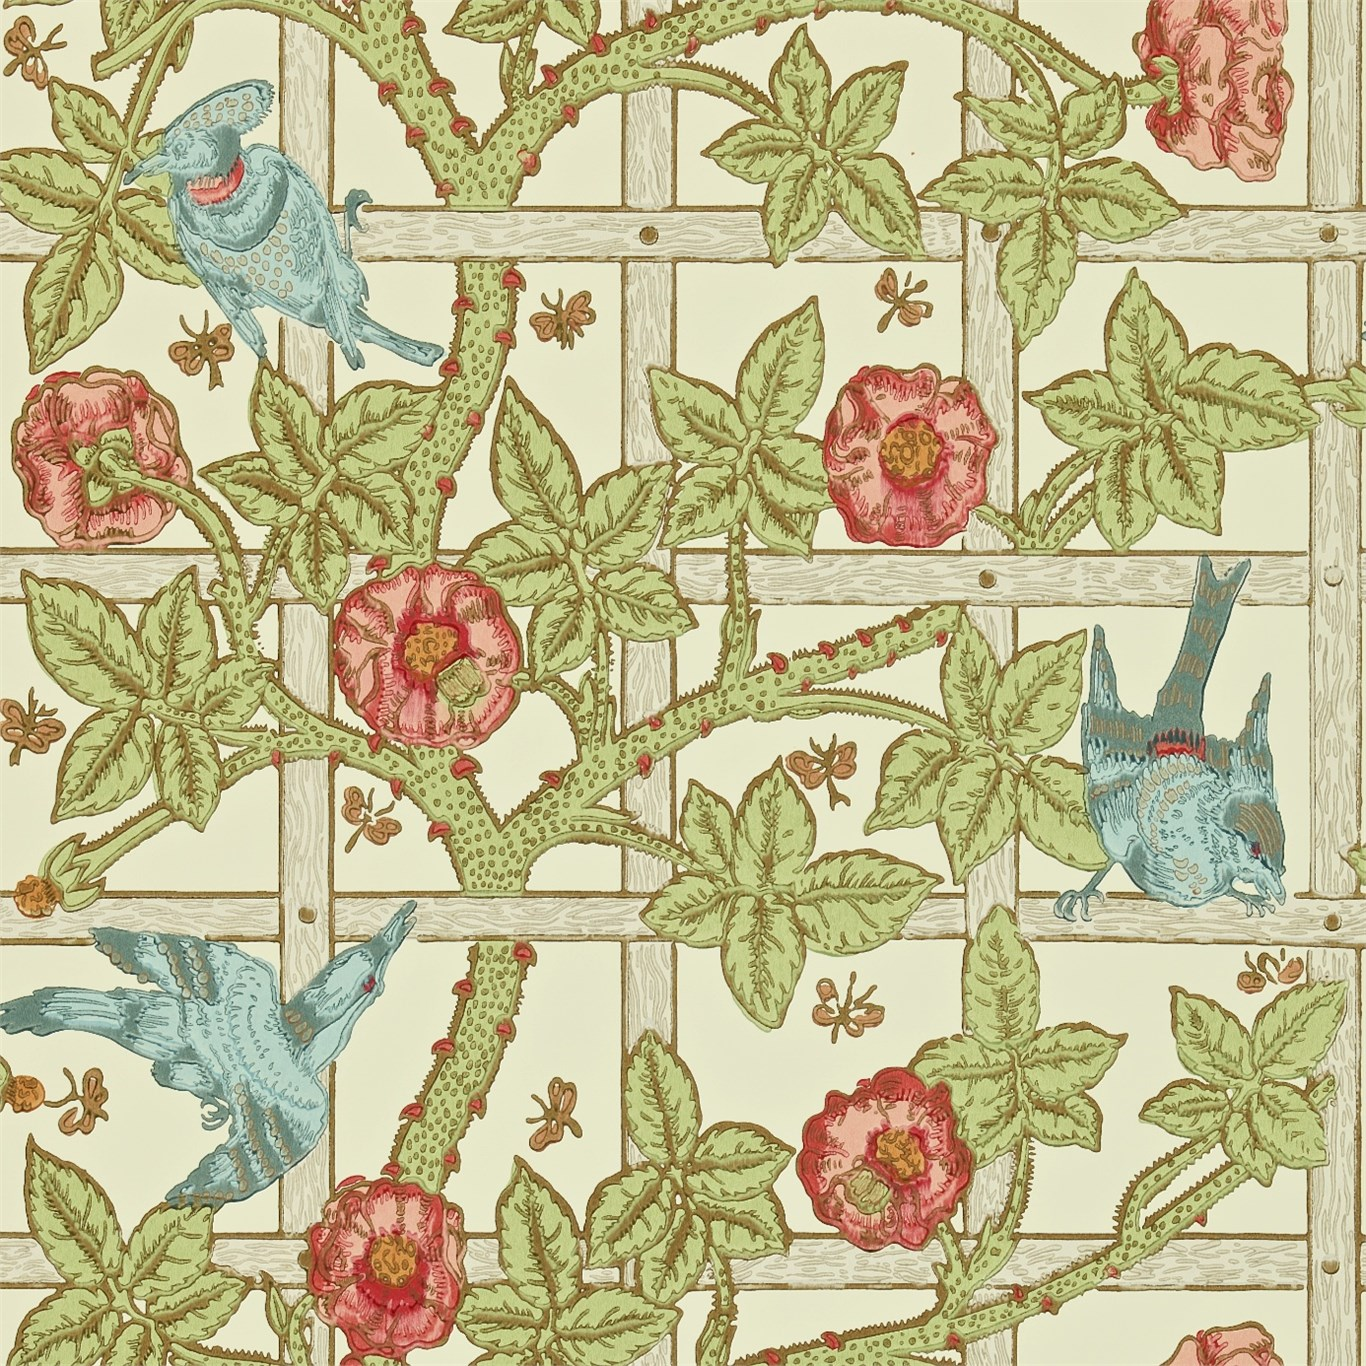 and Wallpapers Trellis DMCW210487 Morris Wallpaper Compendium II 1366x1366